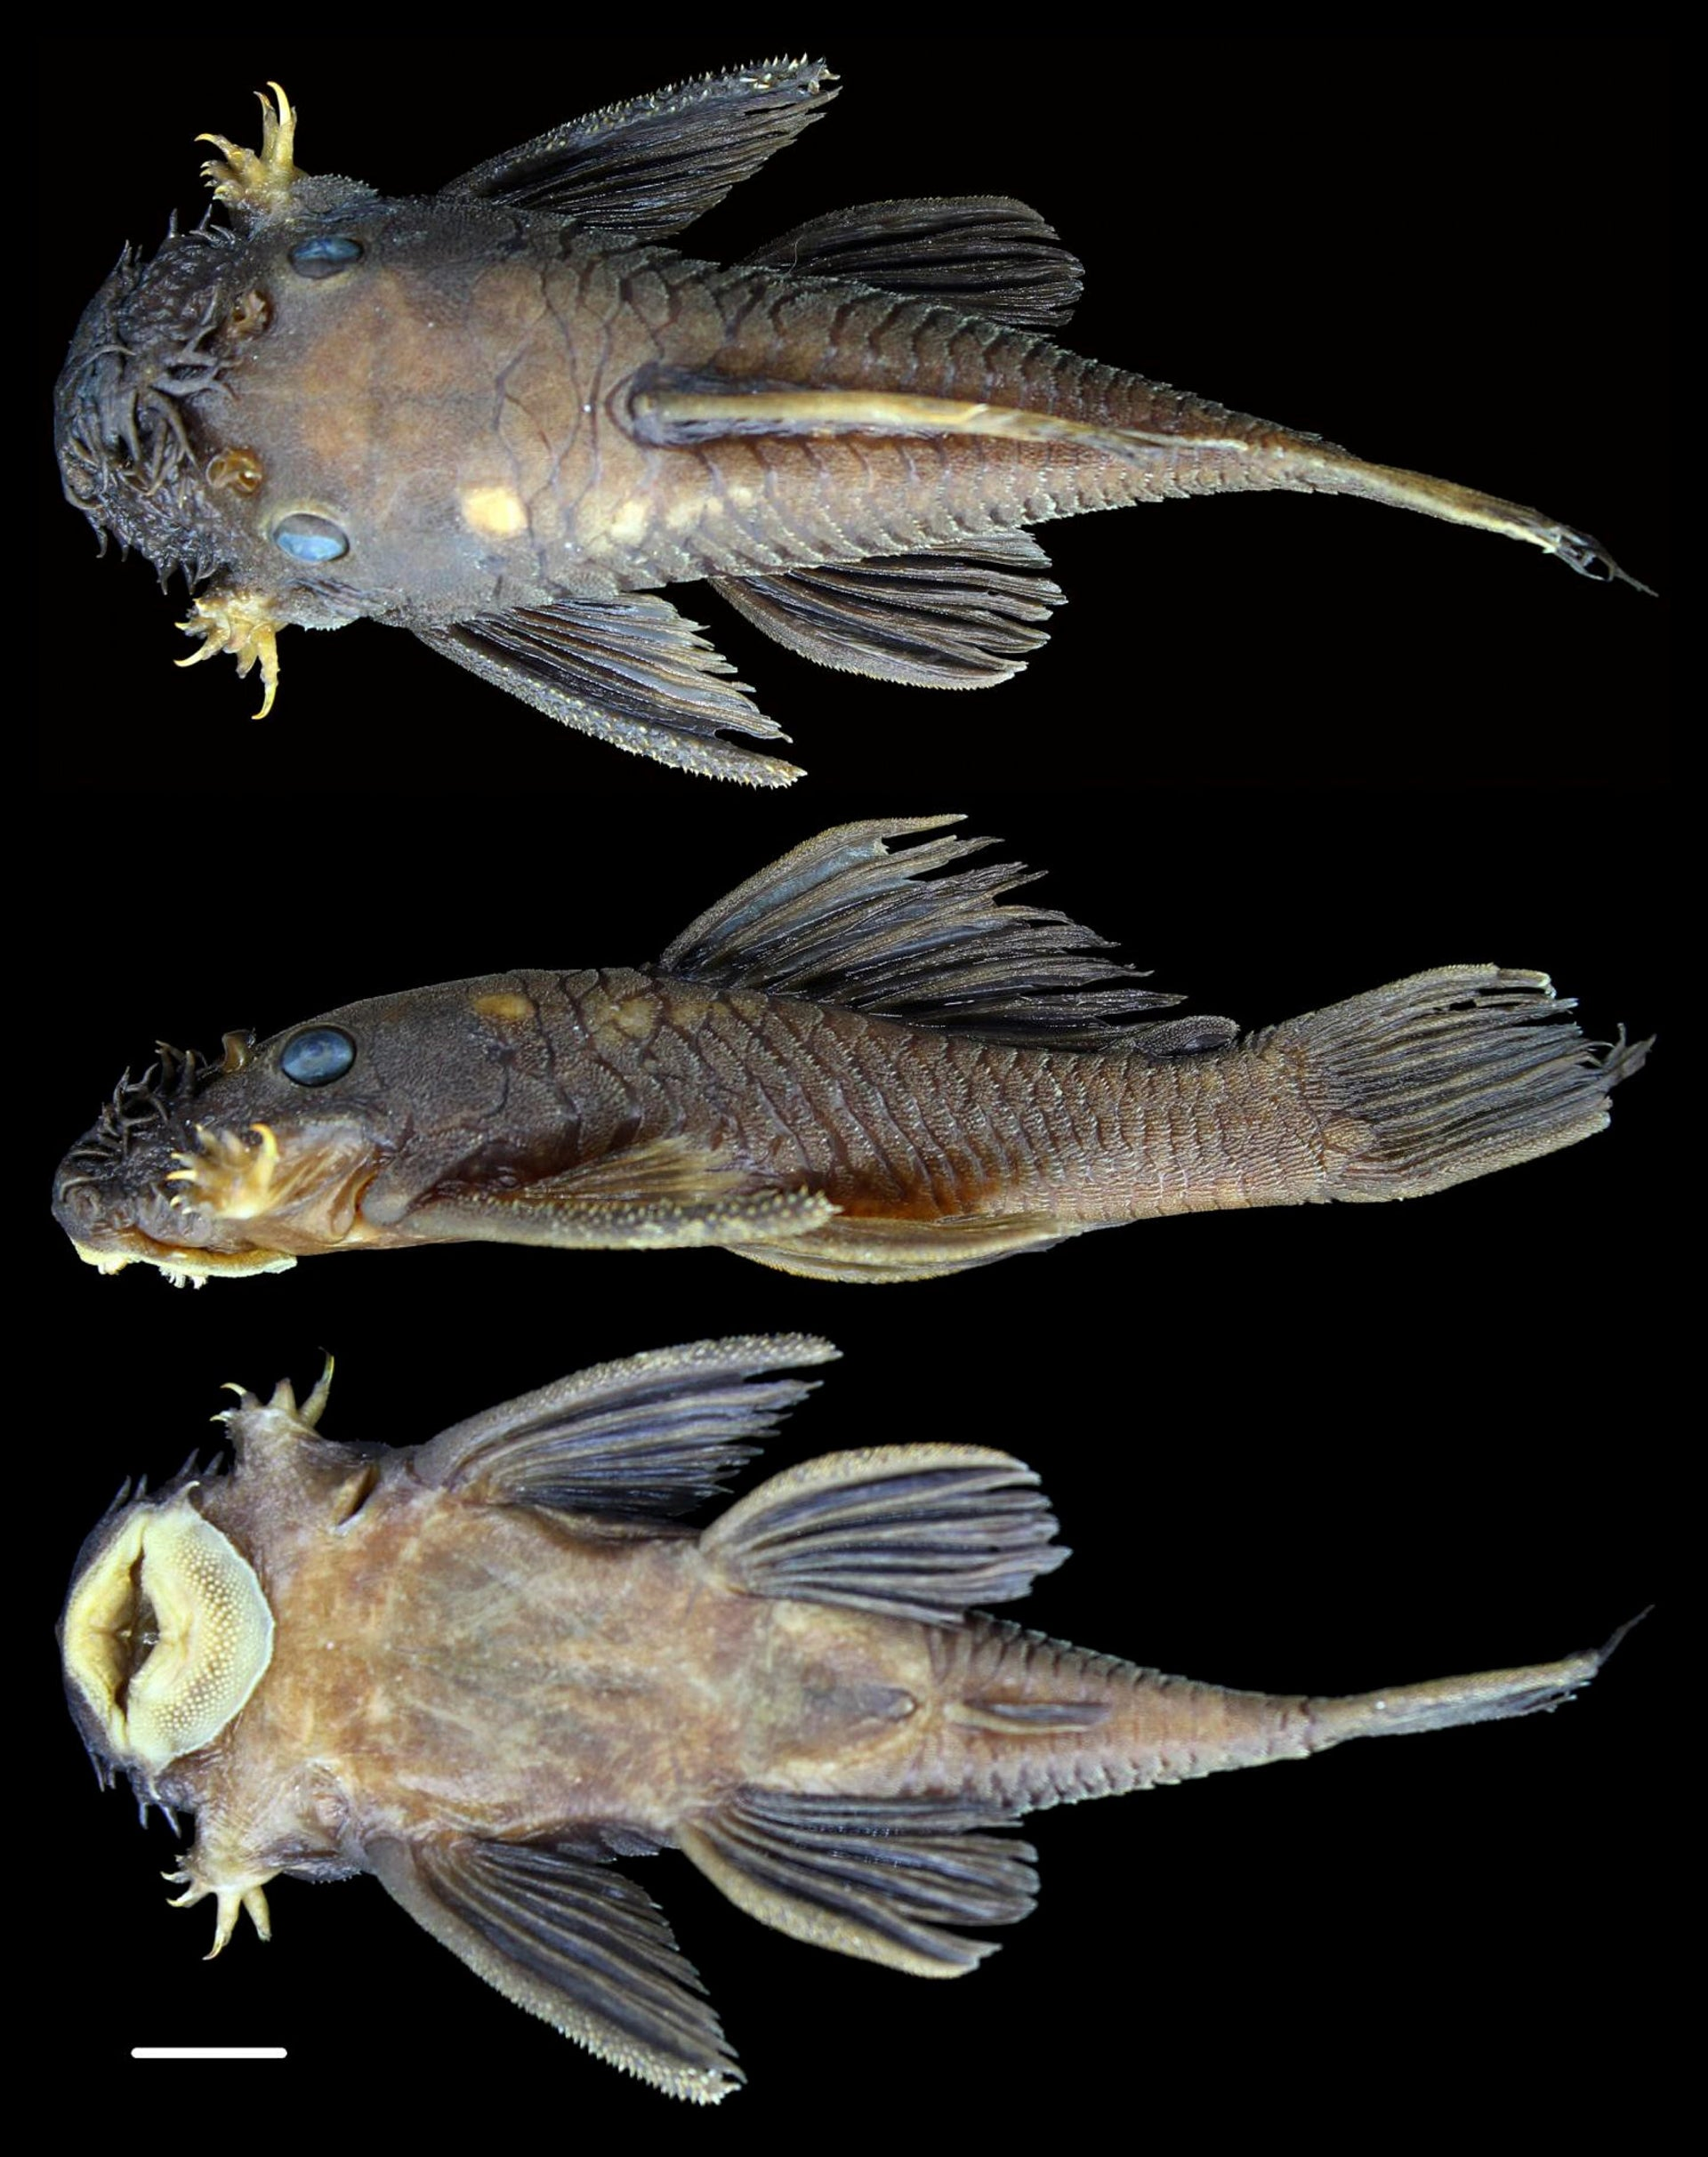 Ancistrus patronus, named for the genus's paternal care of offspring.